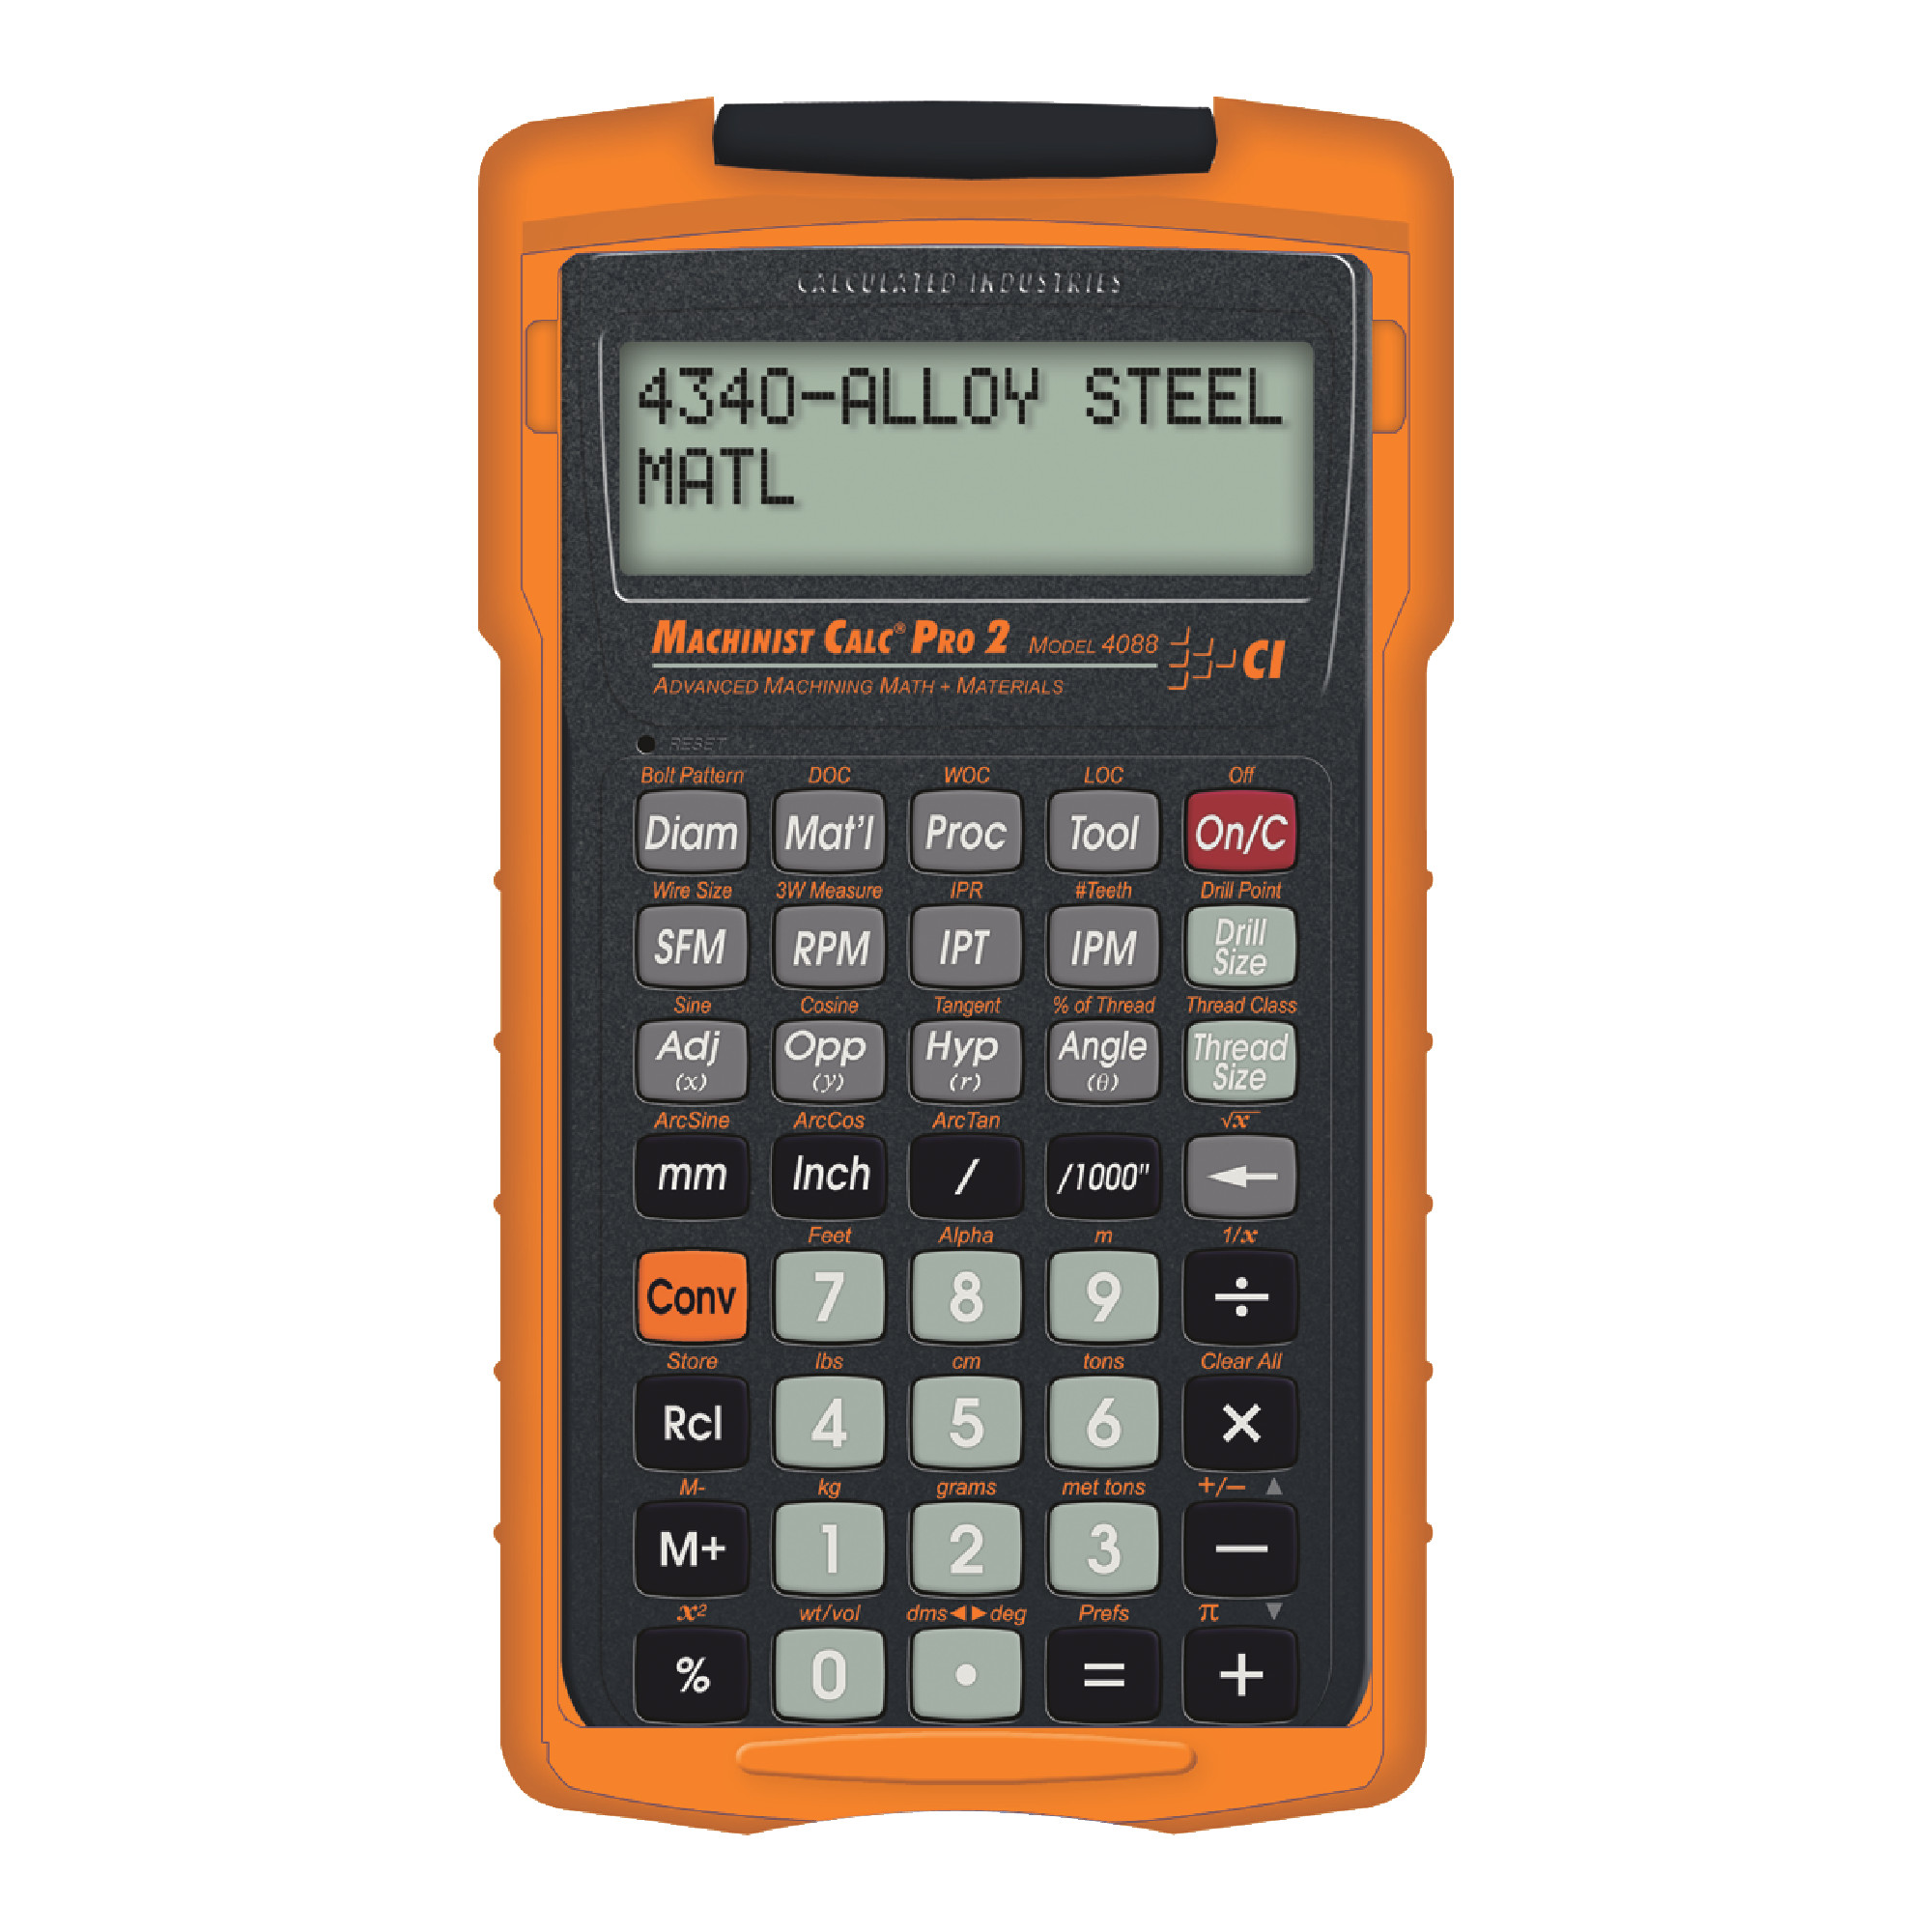 MACHINIST CALC PRO 2 - WITH MATERIALS